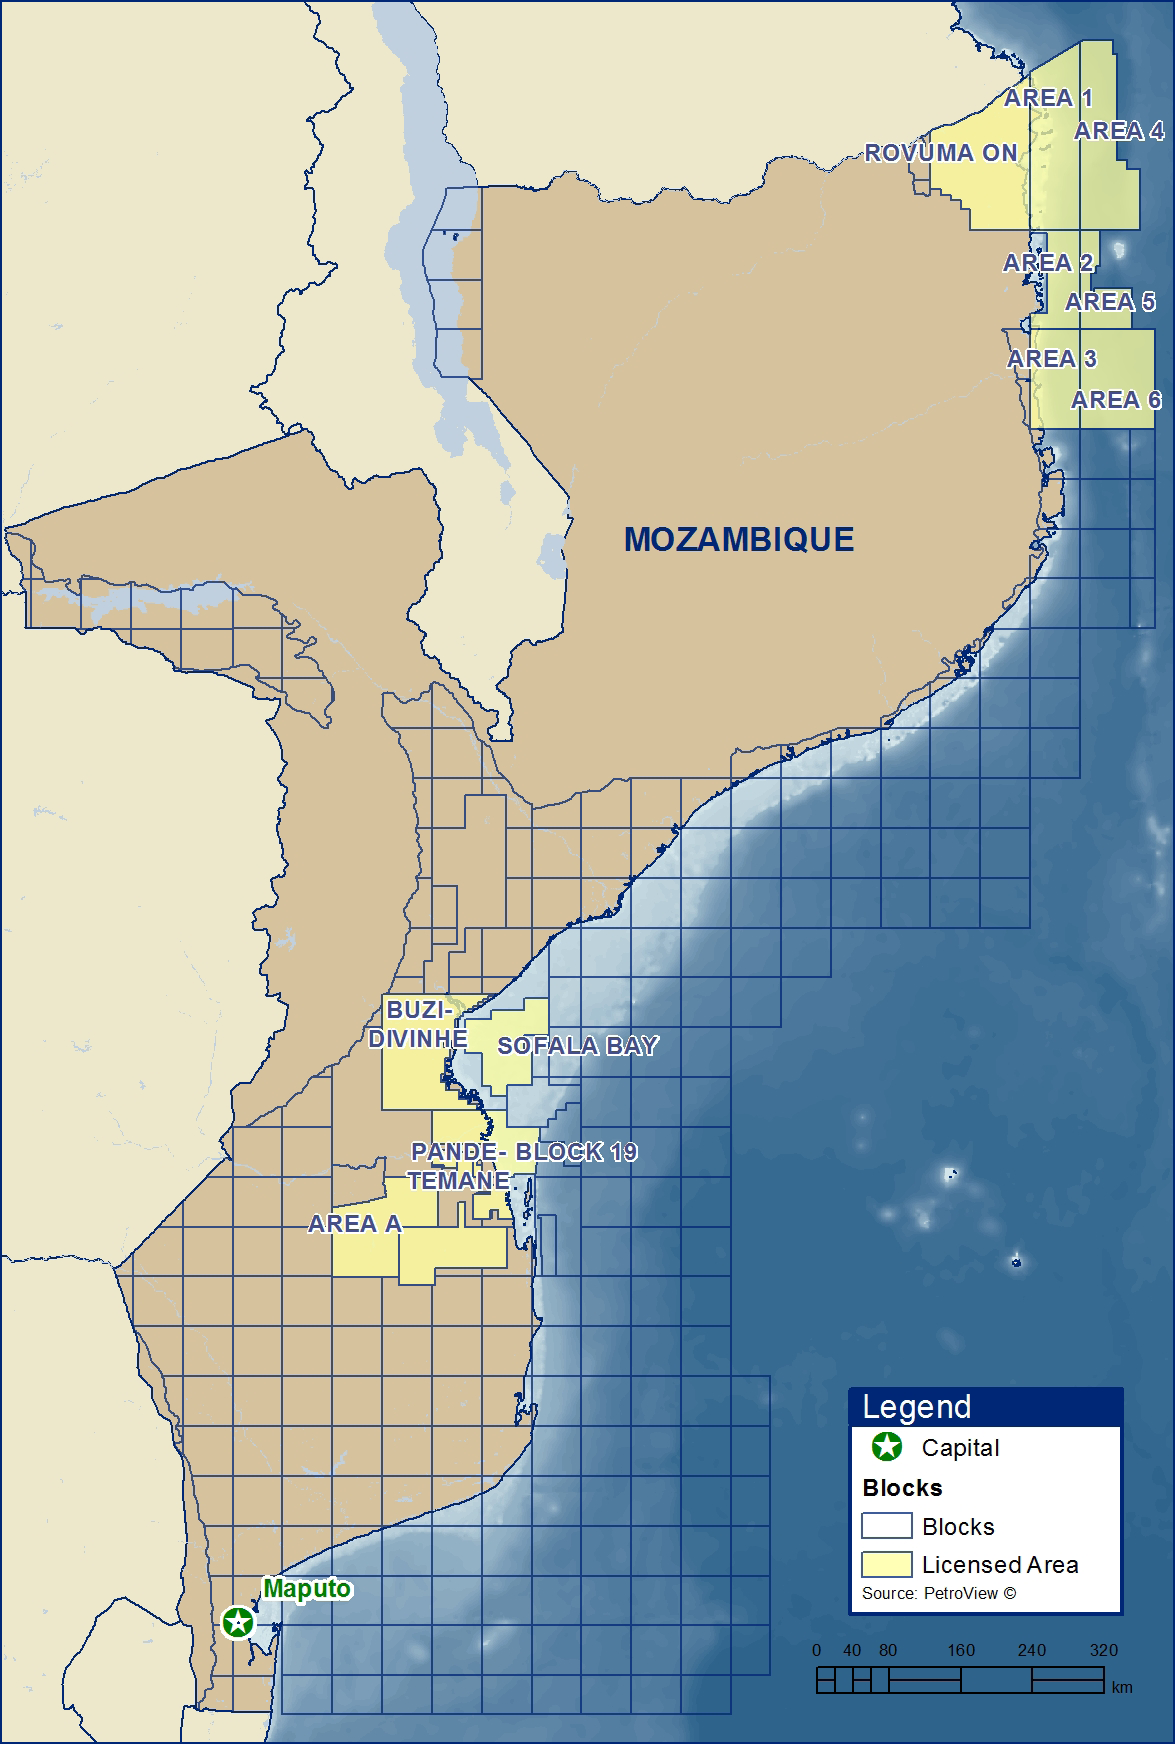 3.3 Industry overview Exploration for hydrocarbons in Mozambique dates back to 1948 and prior to 1971, 54 exploration wells had been drilled, including 10 offshore.